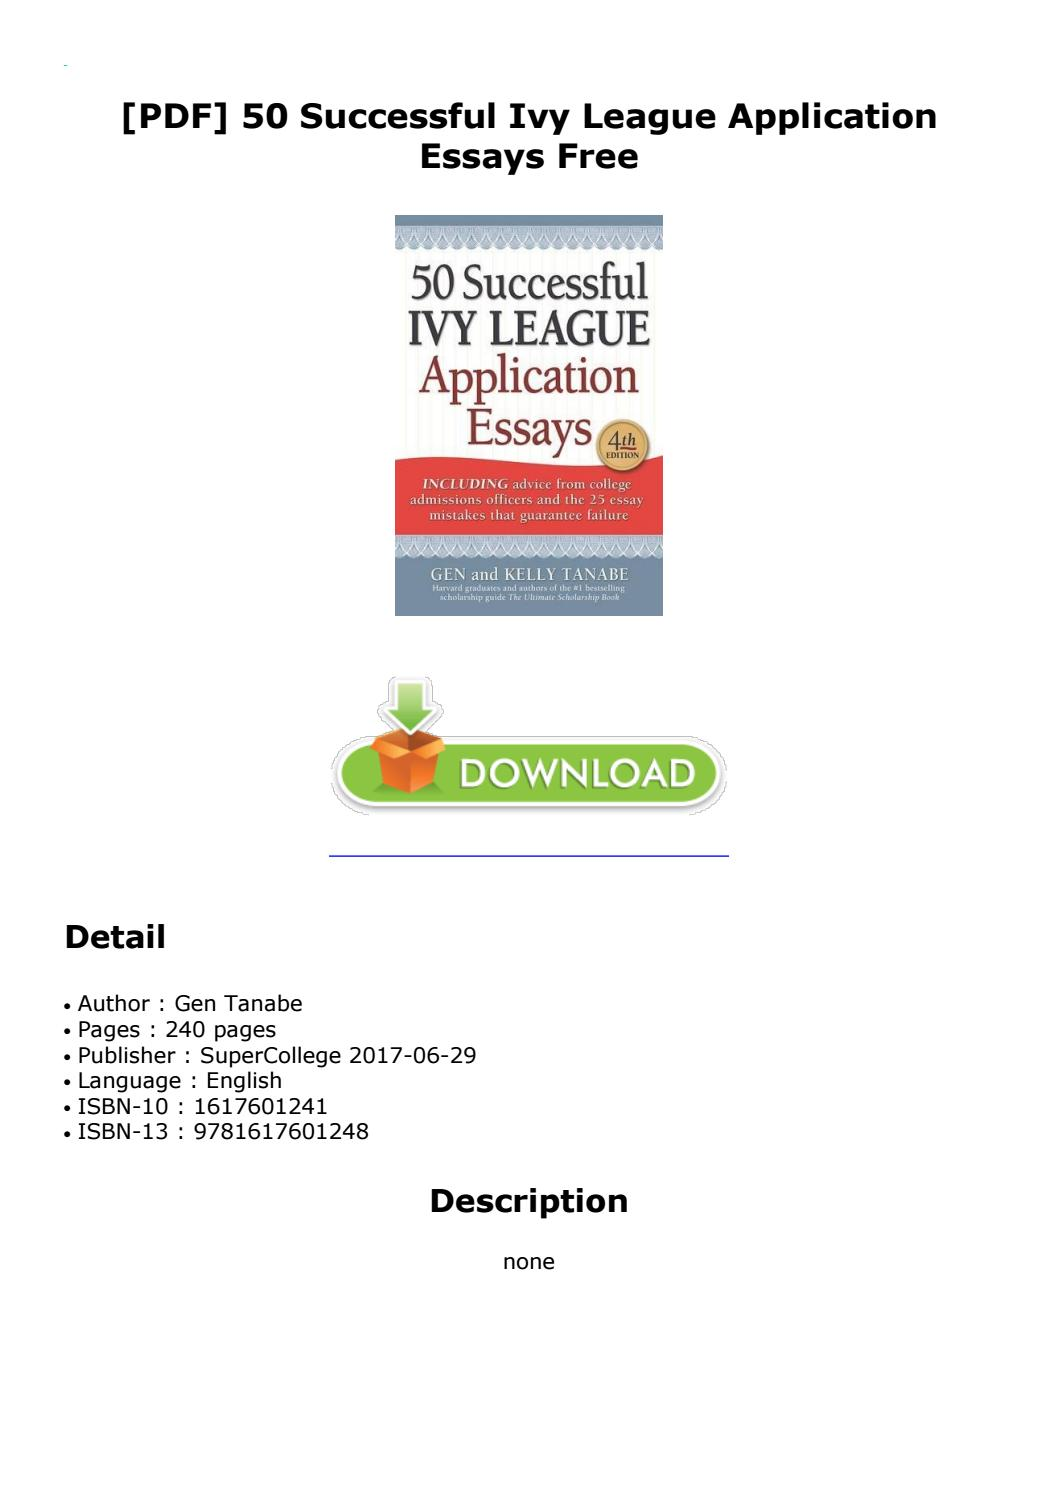 005 Successful Harvard Application Essays Pdf Page 1 Essay Impressive 50 Free 4th Edition Download Full